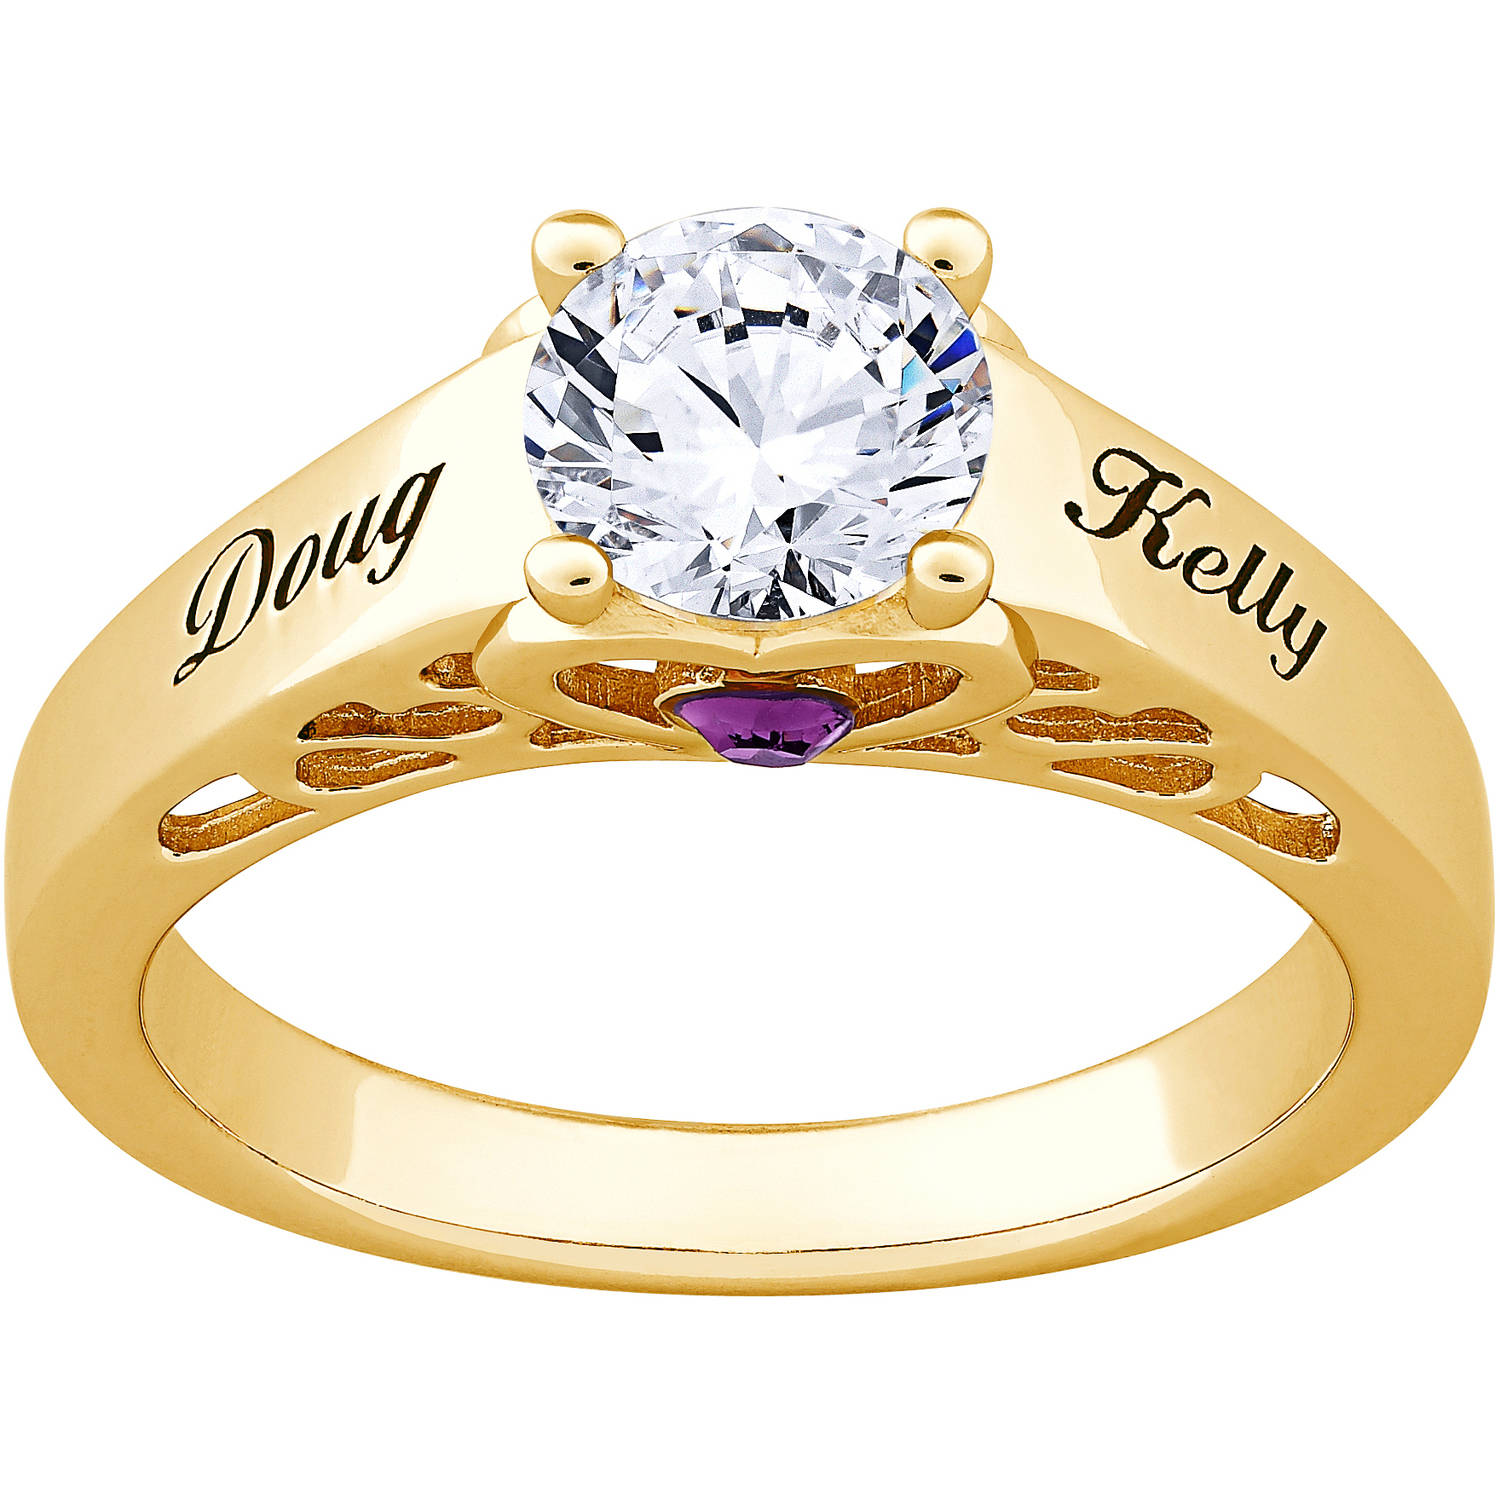 personalized gold sterling silver s name